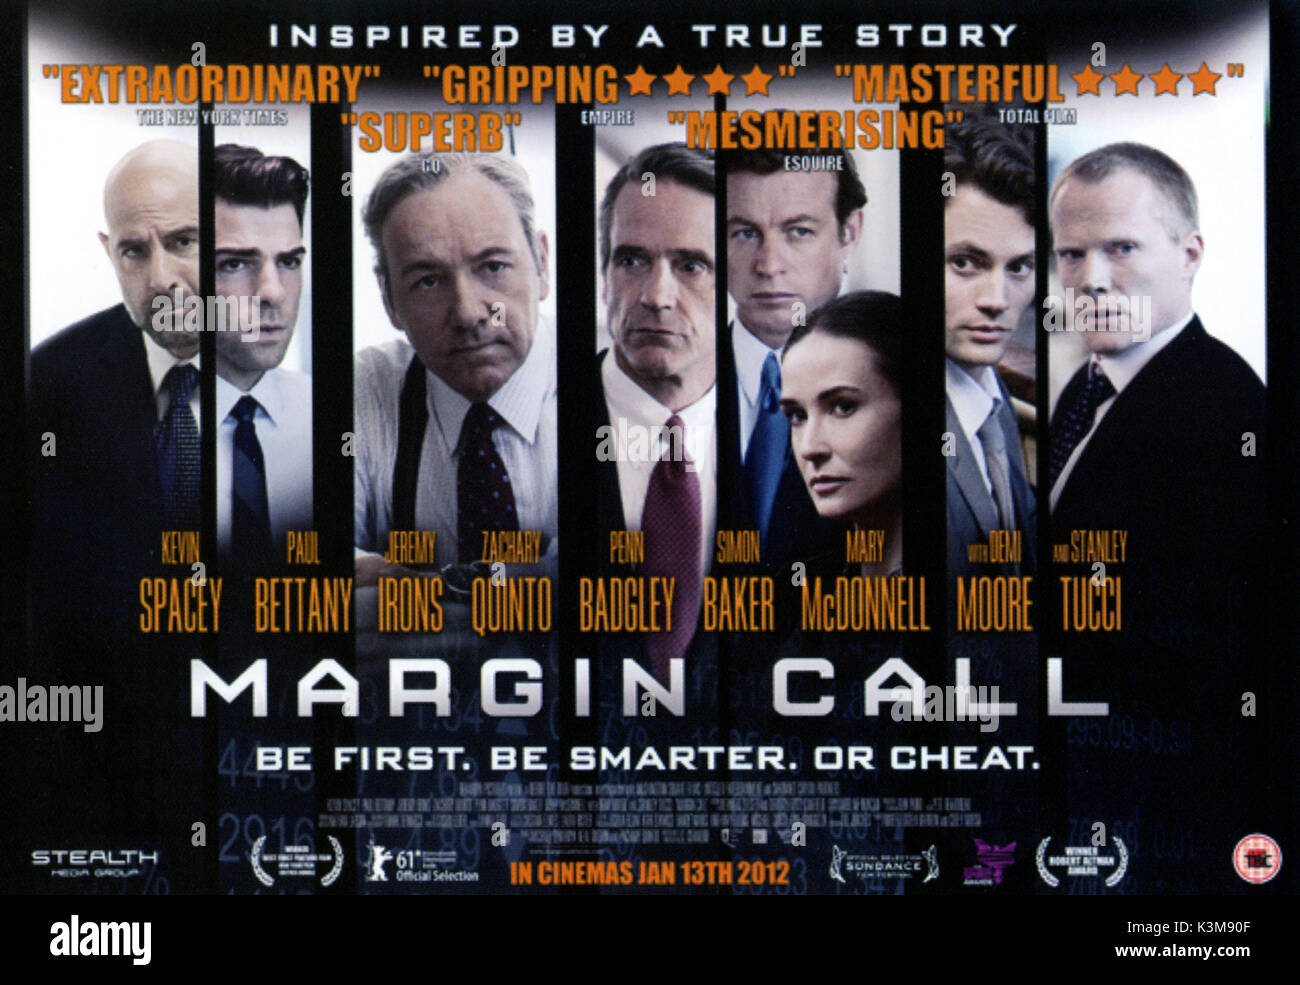 margin call full movie hd download